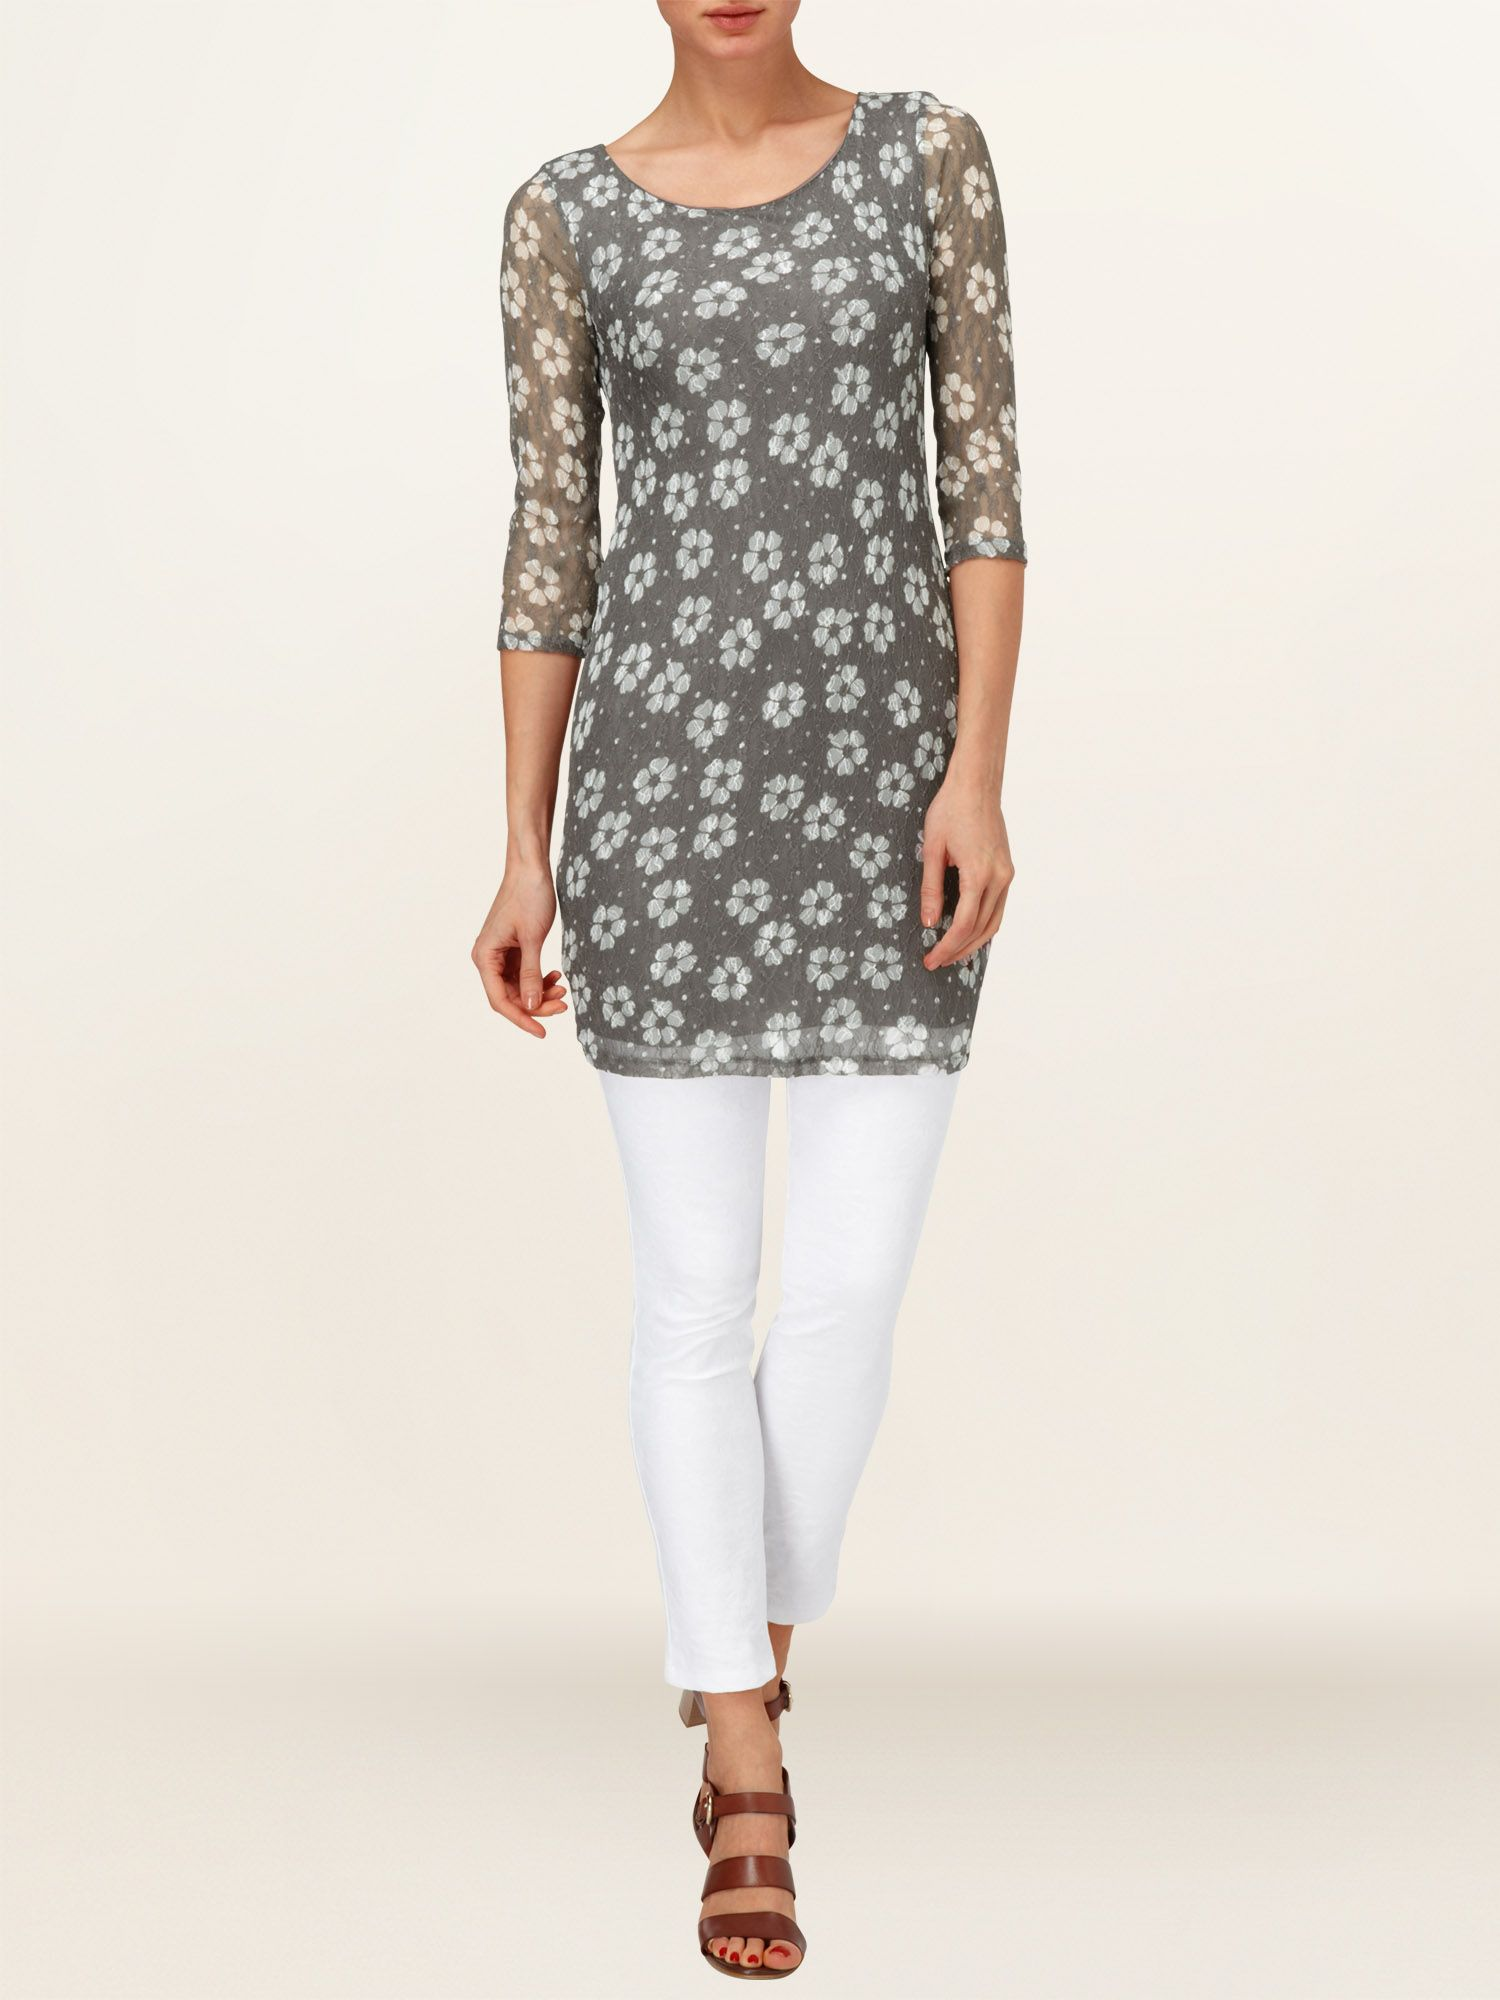 Daisy dot tunic